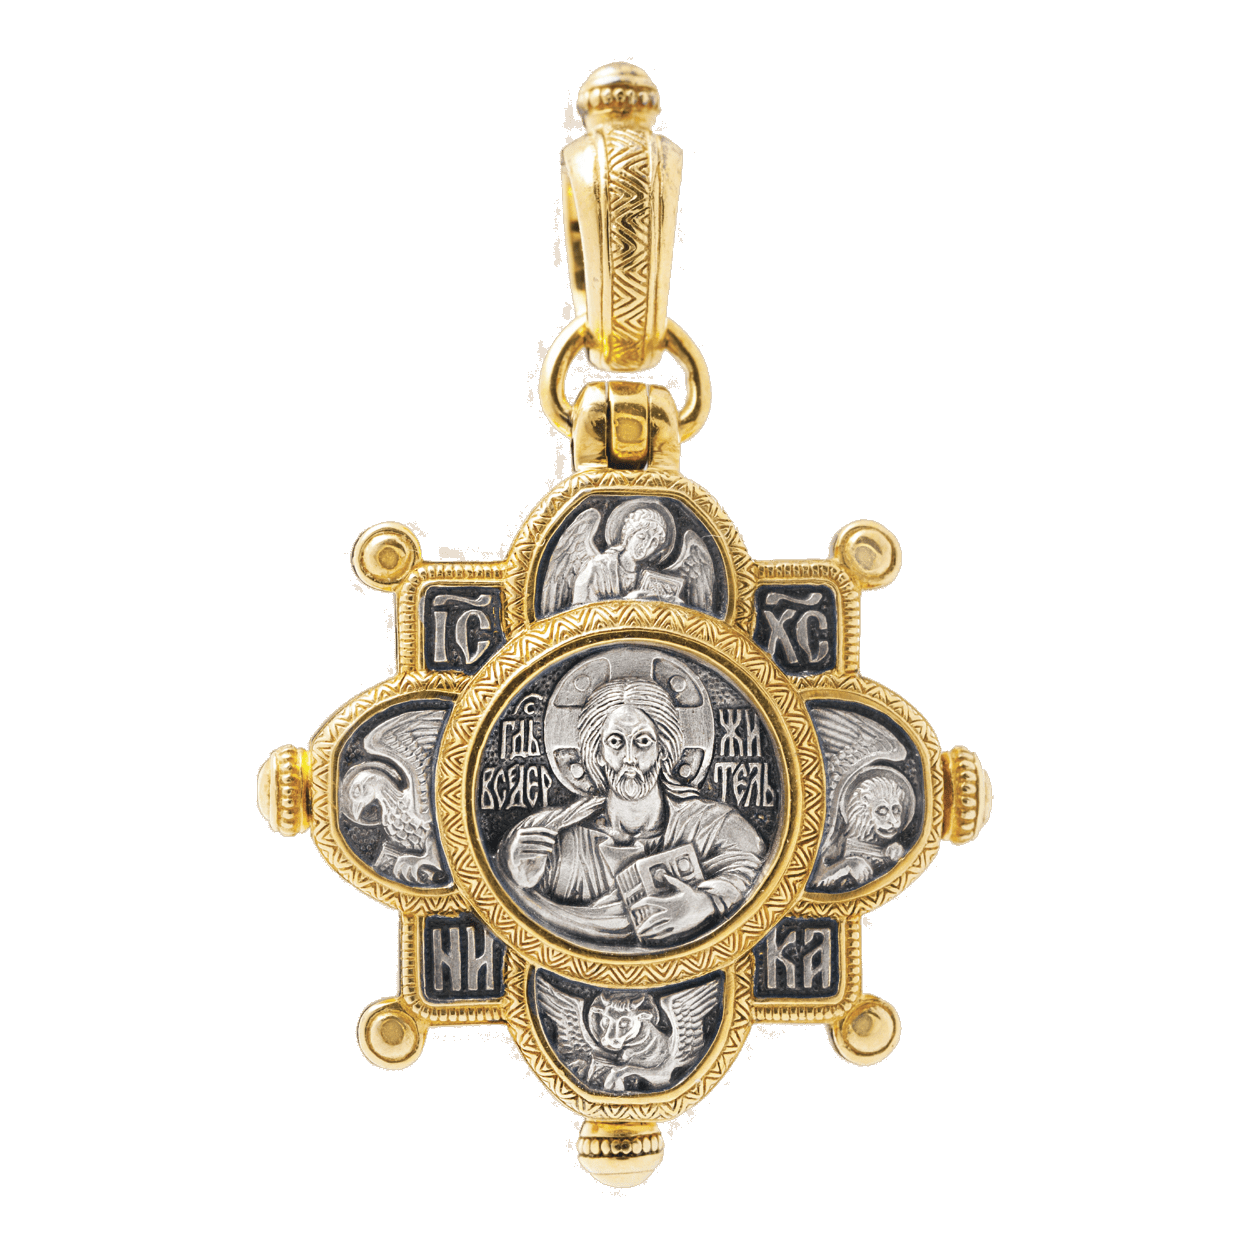 MS039_A-Russian-Orthodox-silver-Reliquary-cross-pendant-THE-LORD-ALMIGHTY-OUR-LADY-OF-KAZAN-Master-Jeweler-Fedorov-min (1)-min